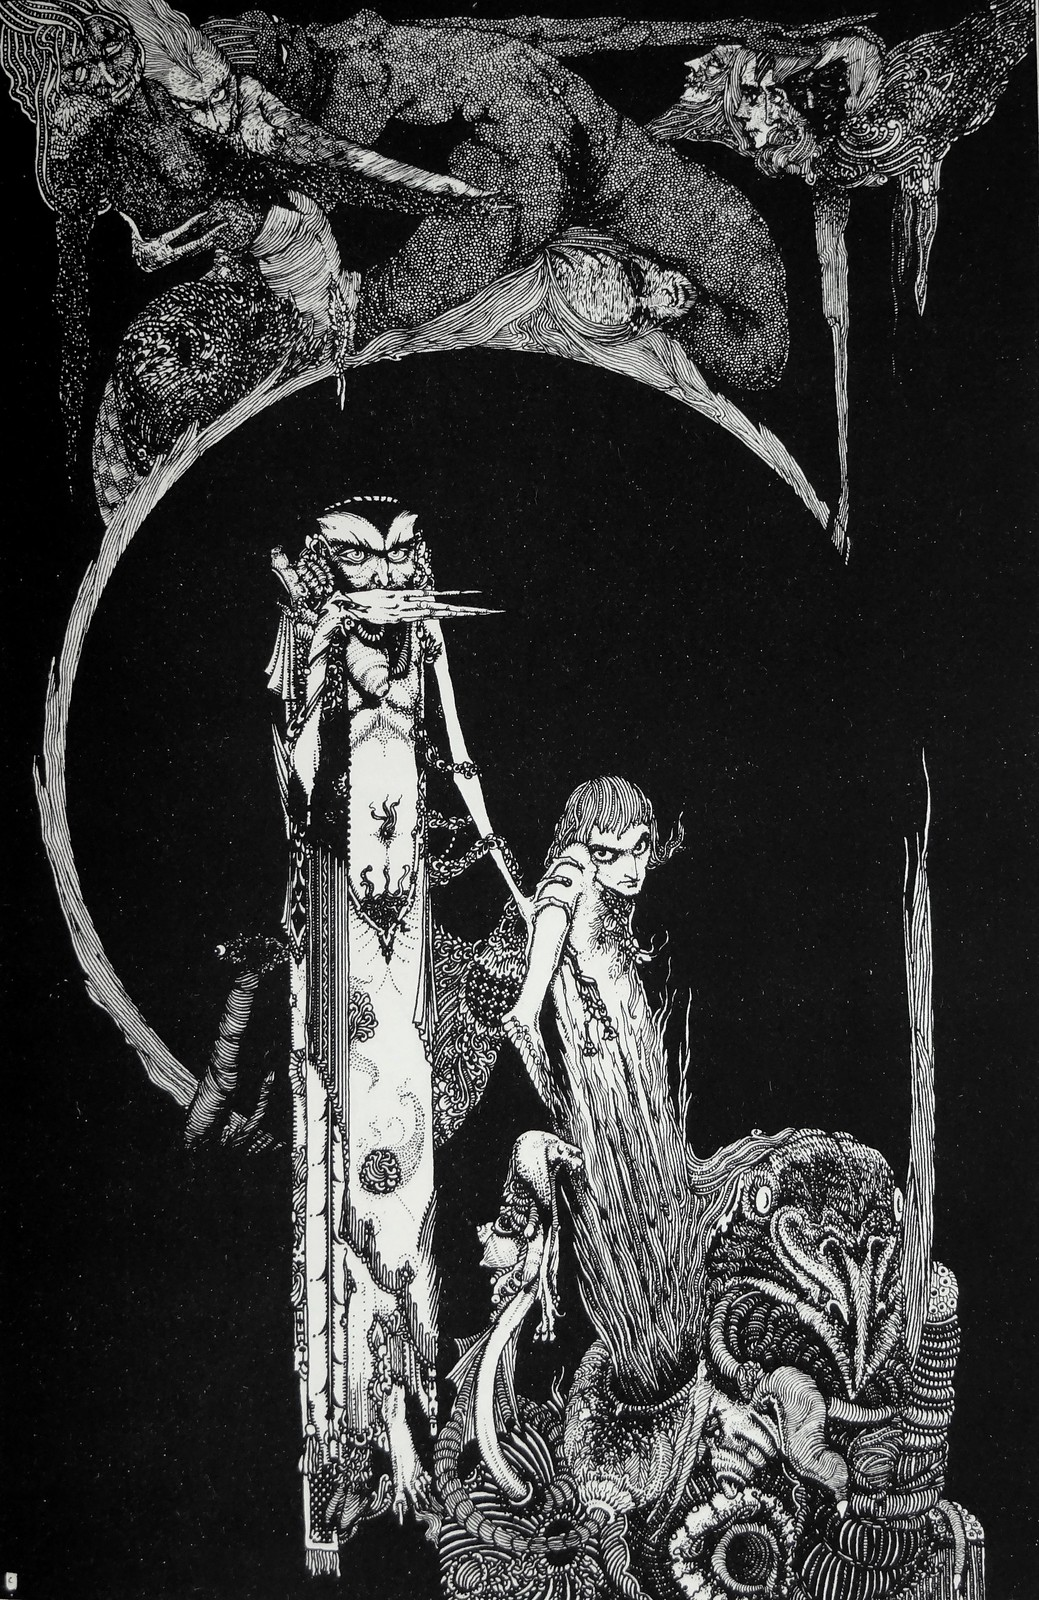 "Wizards and Warlocks: ""On a road like this men droop and drivel, while woman goes fearless and fast to the devil."" Art by Harry Clarke for Goethe's Faust (1927)"